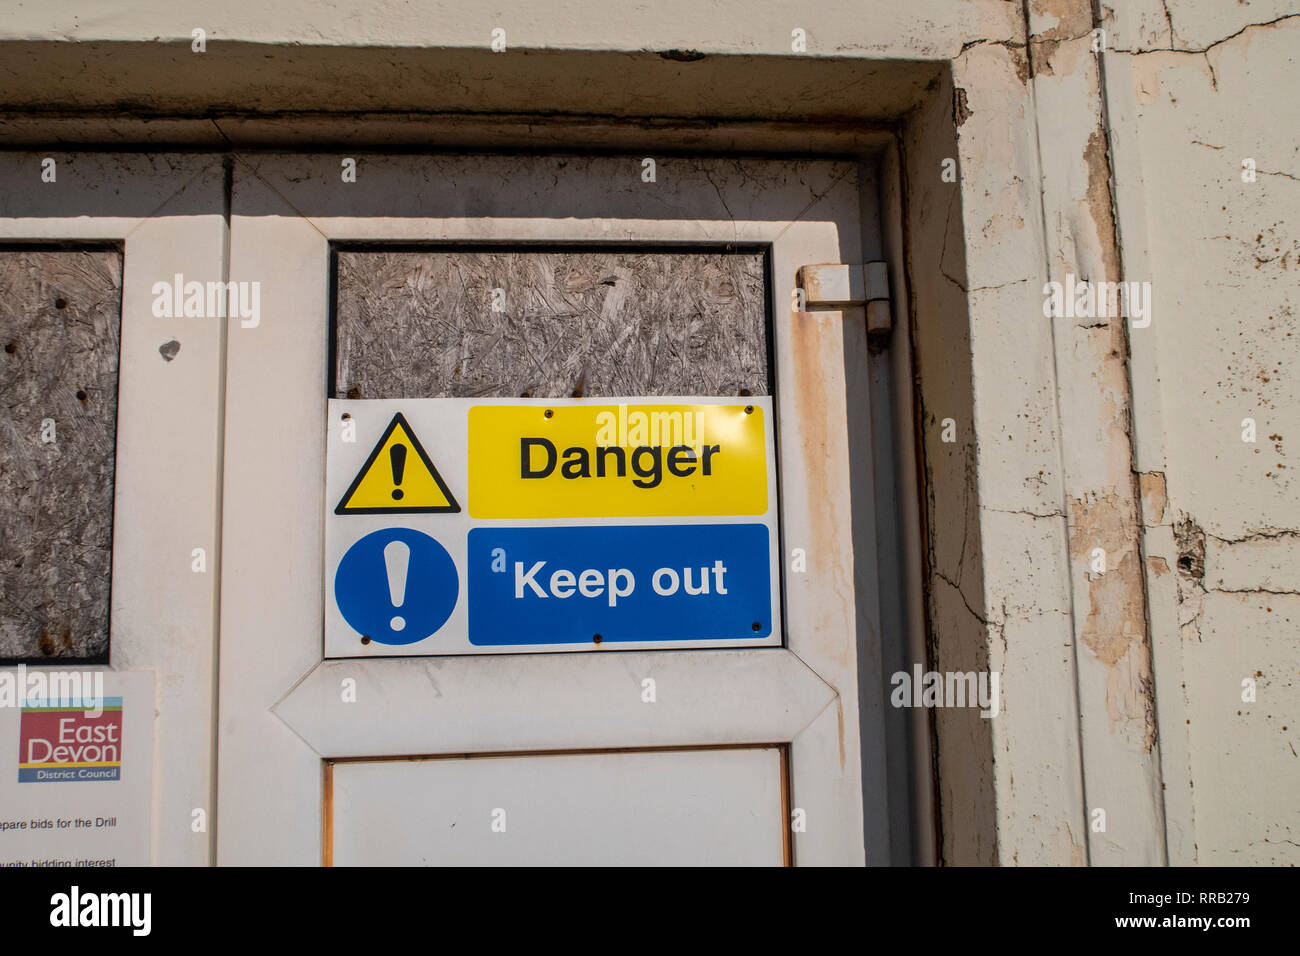 Danger, keep out sign outside the drill hall on the seafront at Sidmouth. - Stock Image